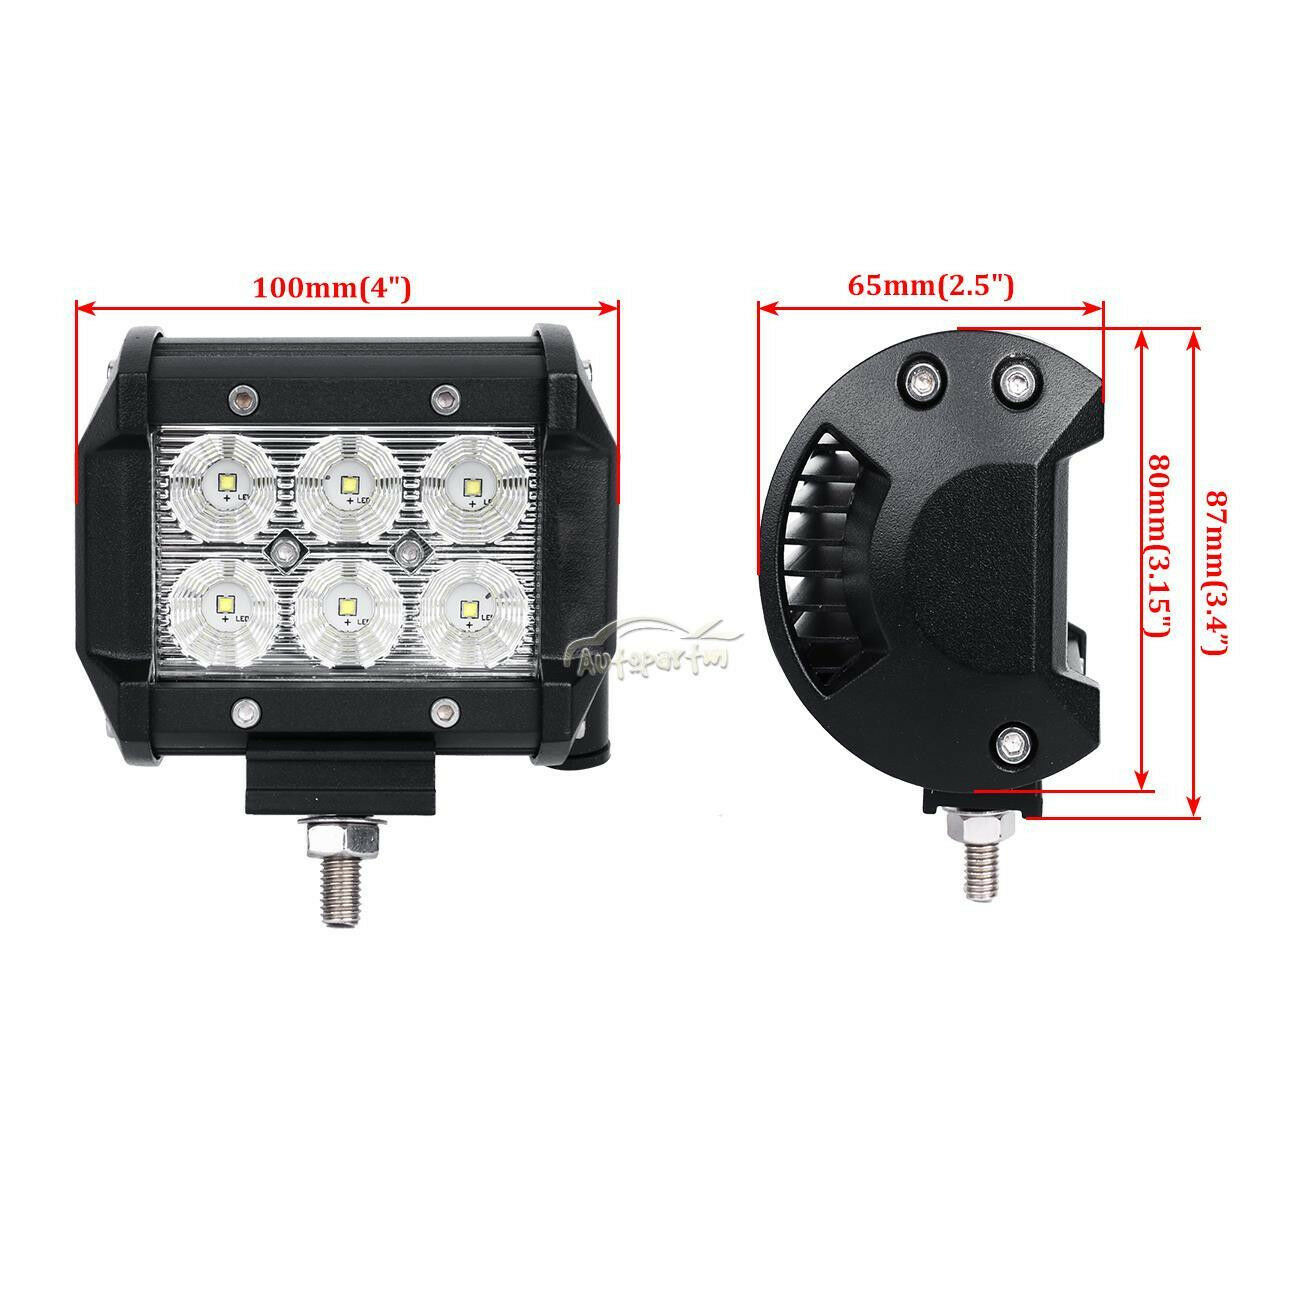 Buy 43 Inch 288w Cree Led Work Light Bar Wiring Kit For Off Road